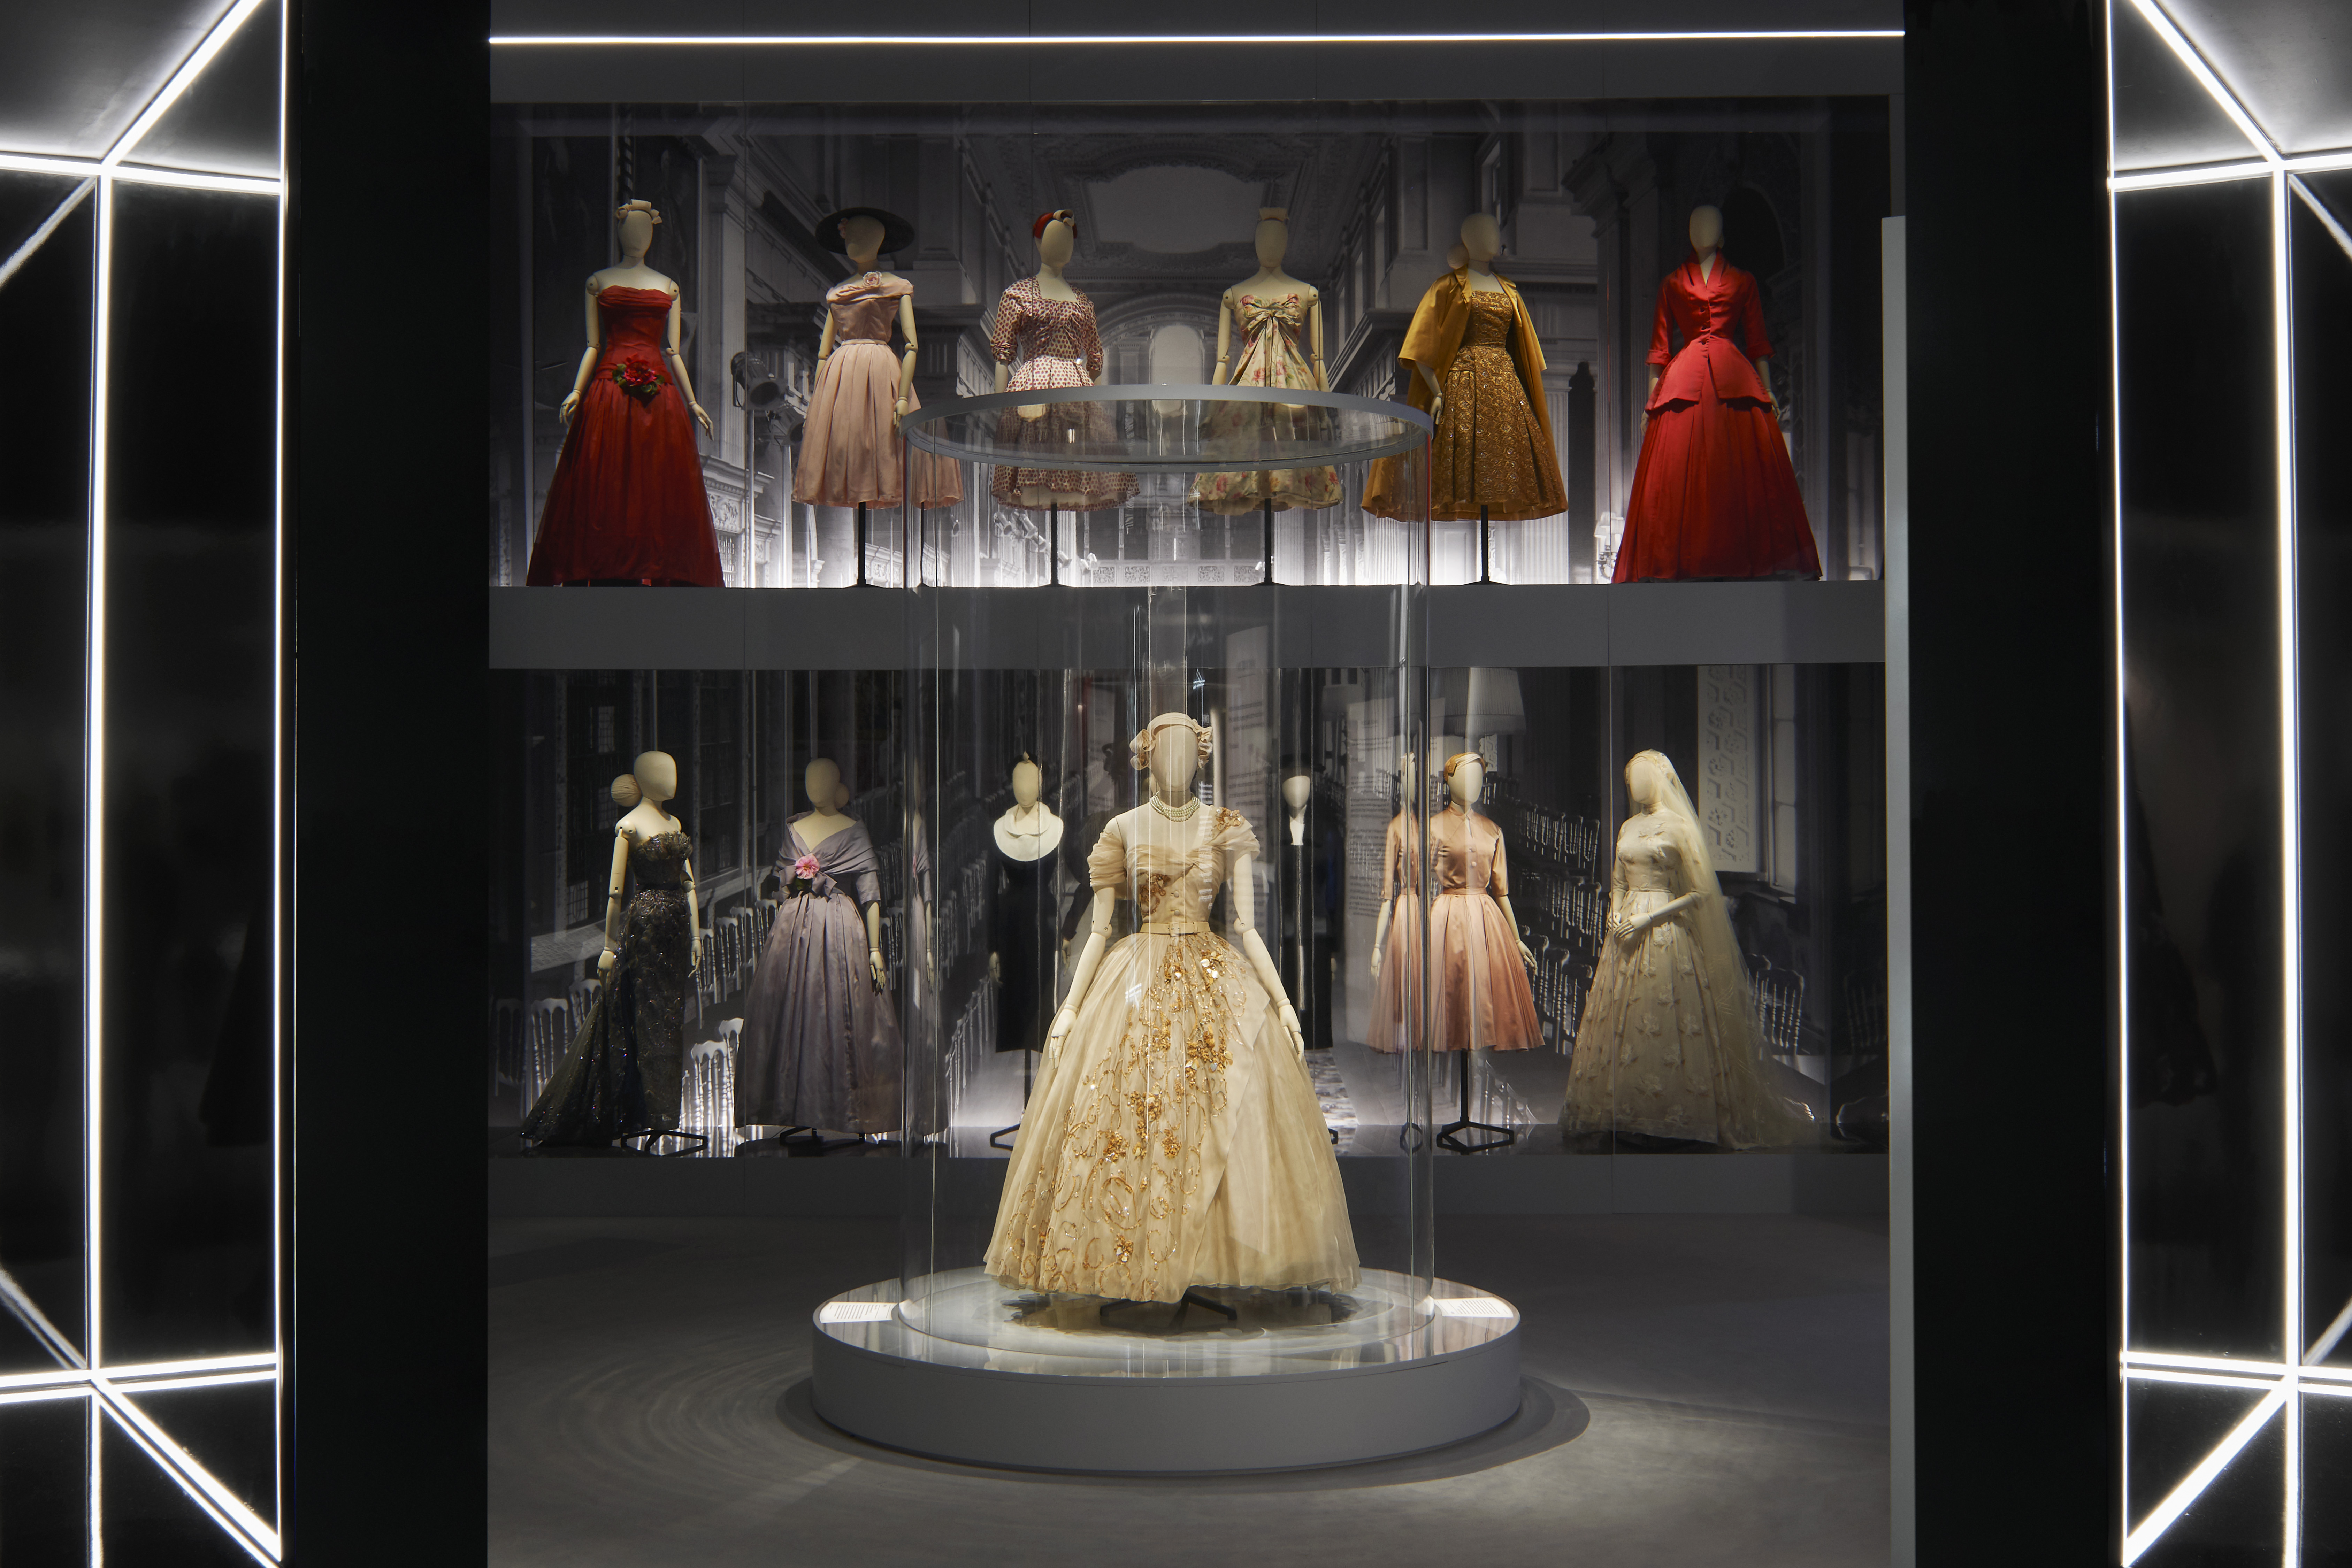 Go Behind-the-Scenes of the Lauded <i>Christian Dior: Designer of Dreams</i> Exhibition